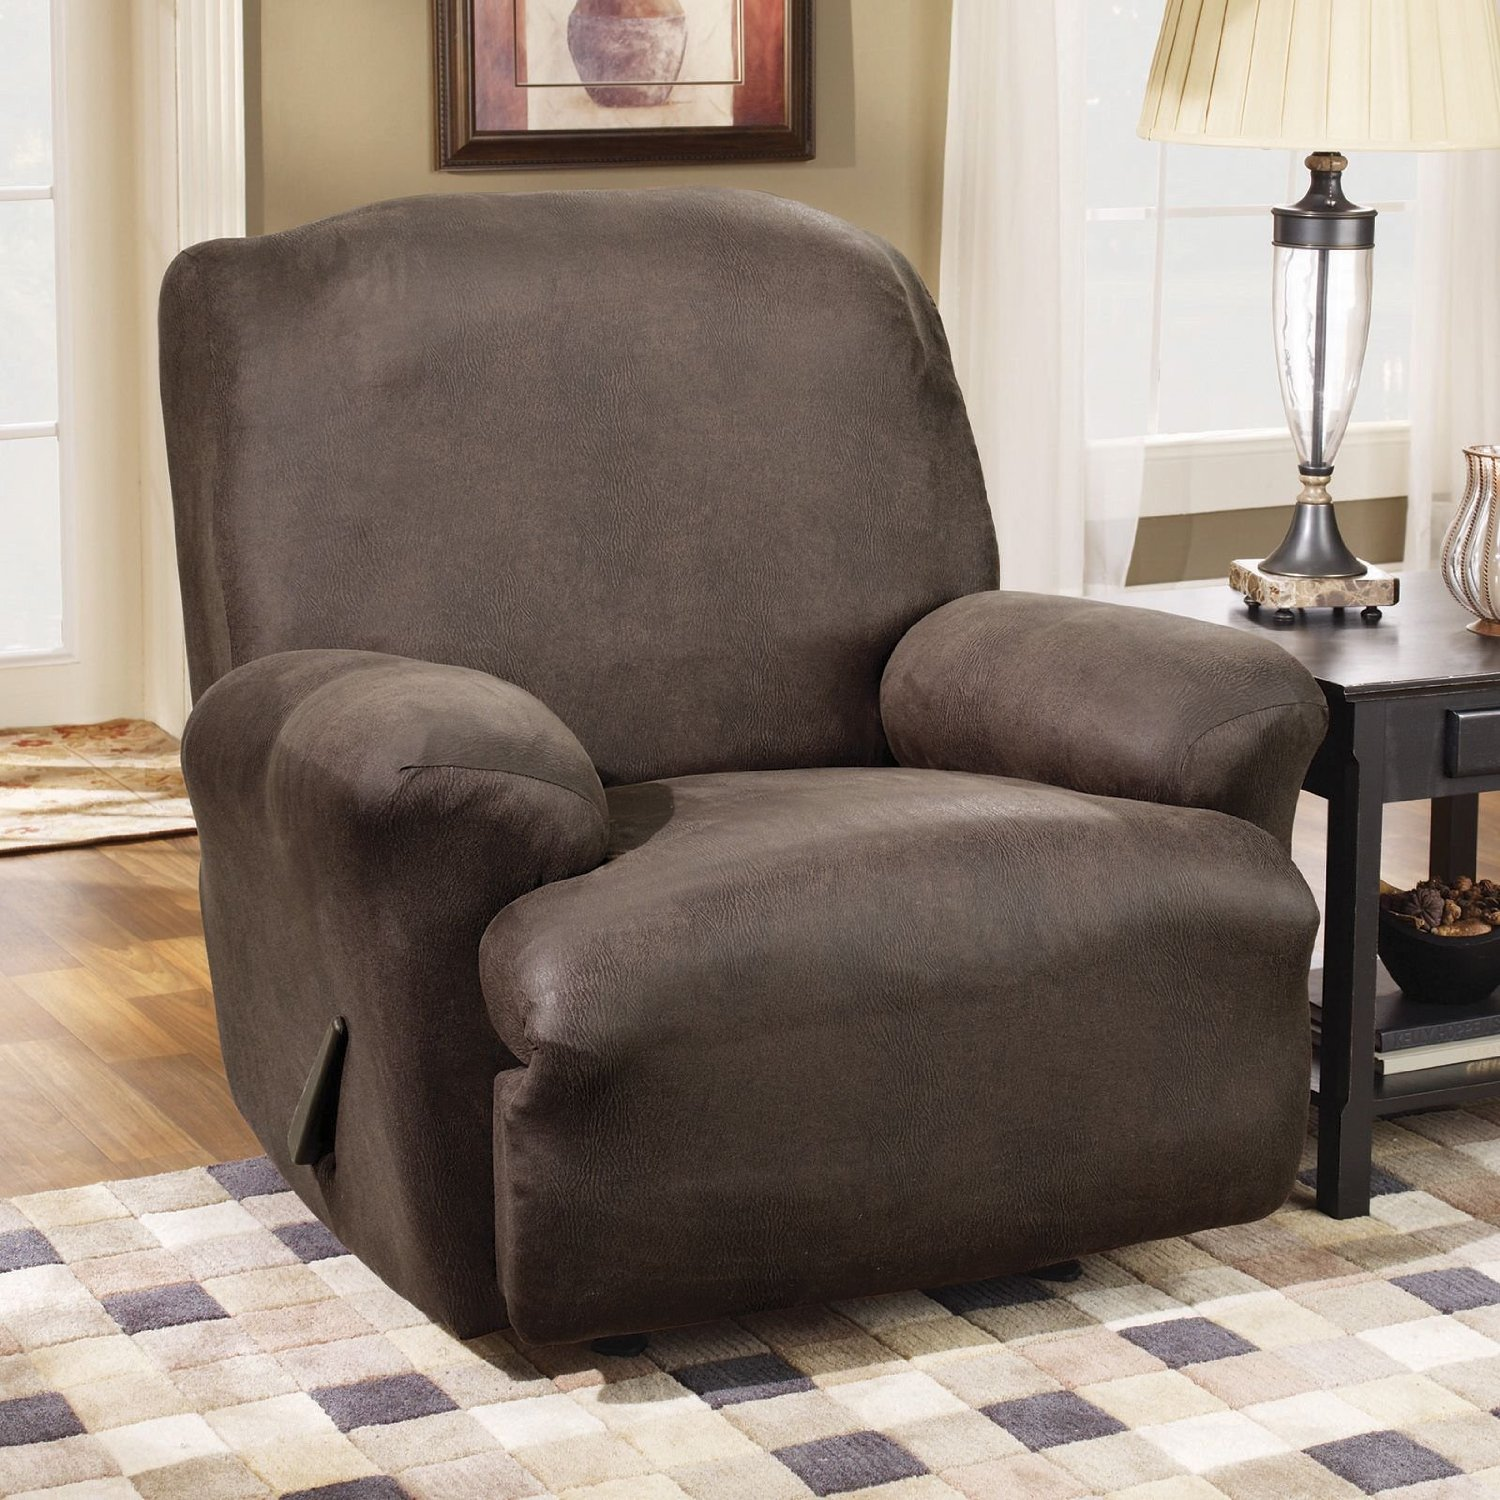 A Review on Sure Fit Stretch Leather Recliner Slipcover - Best Recliners